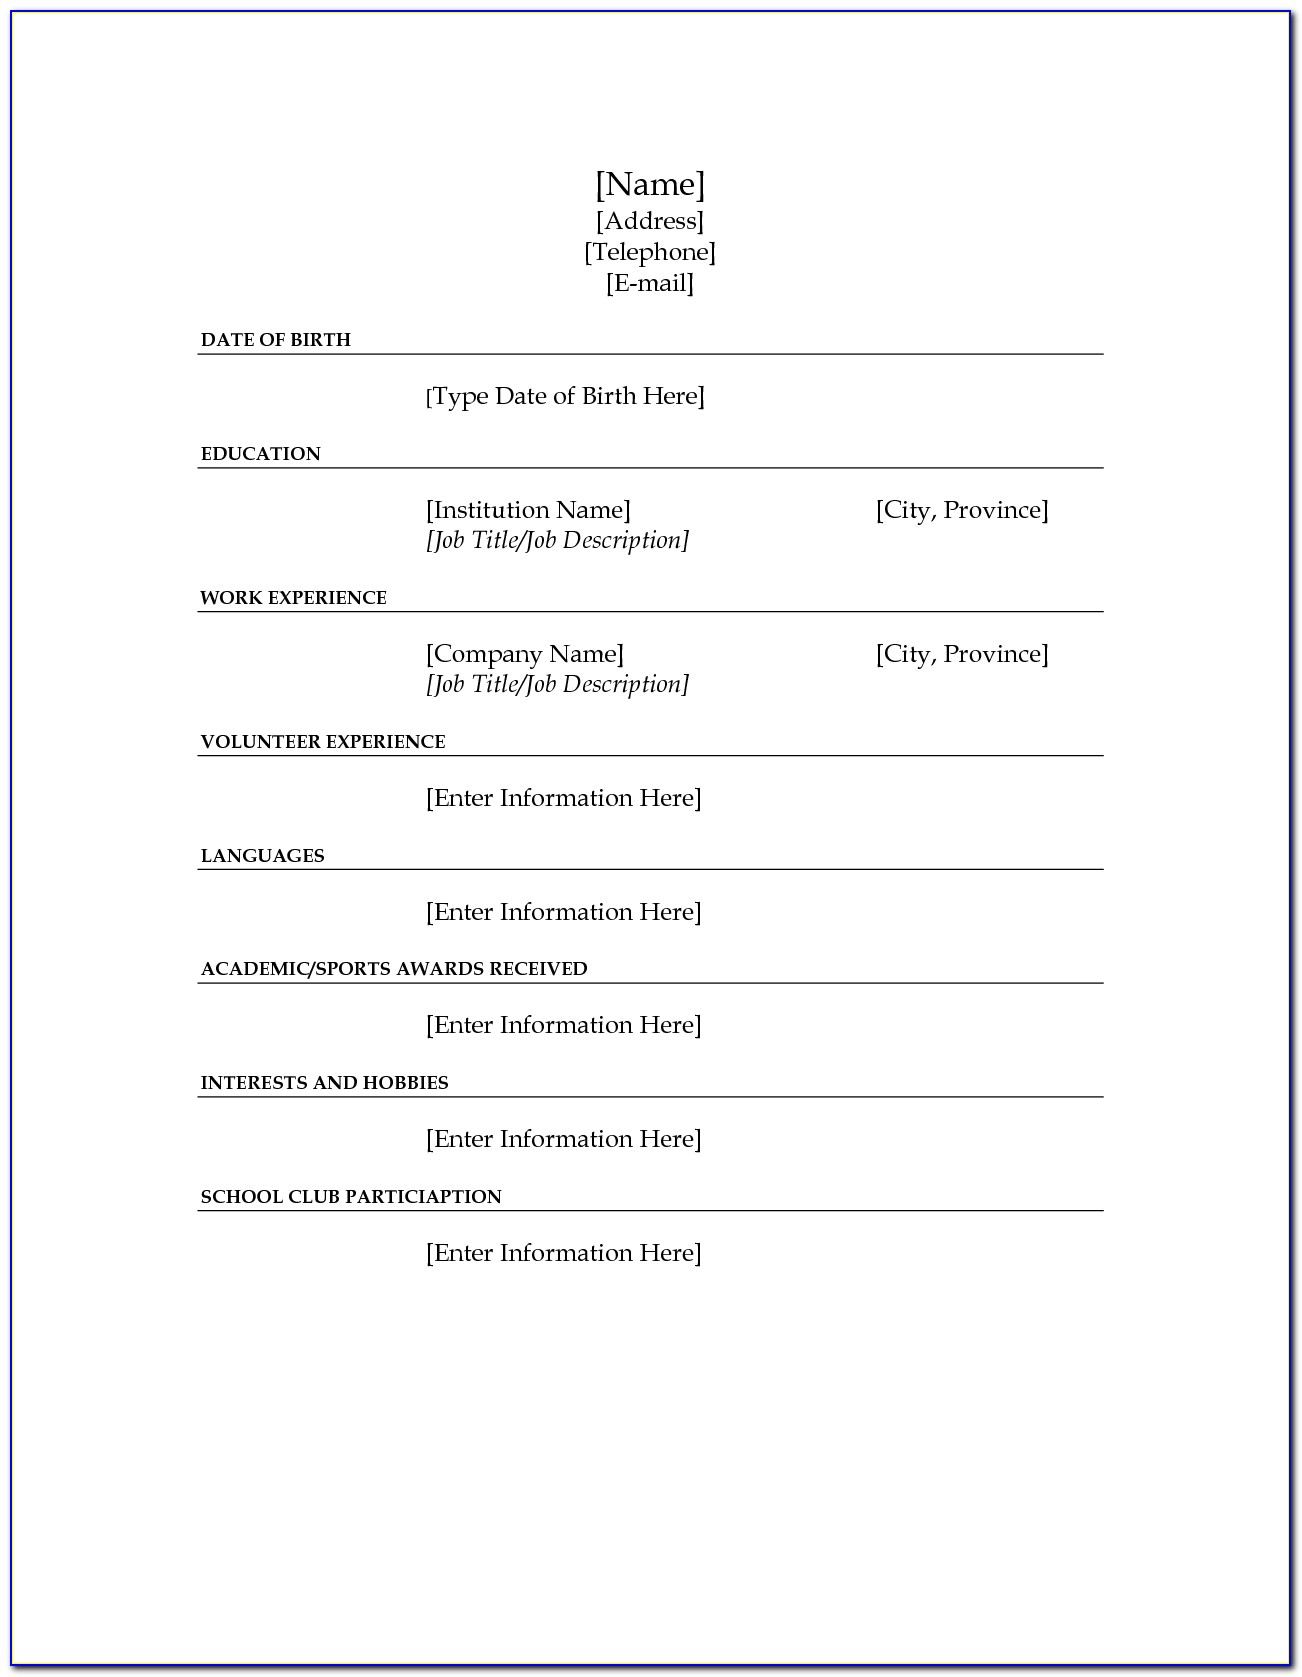 Fill In The Blank Resume Worksheet Pdf